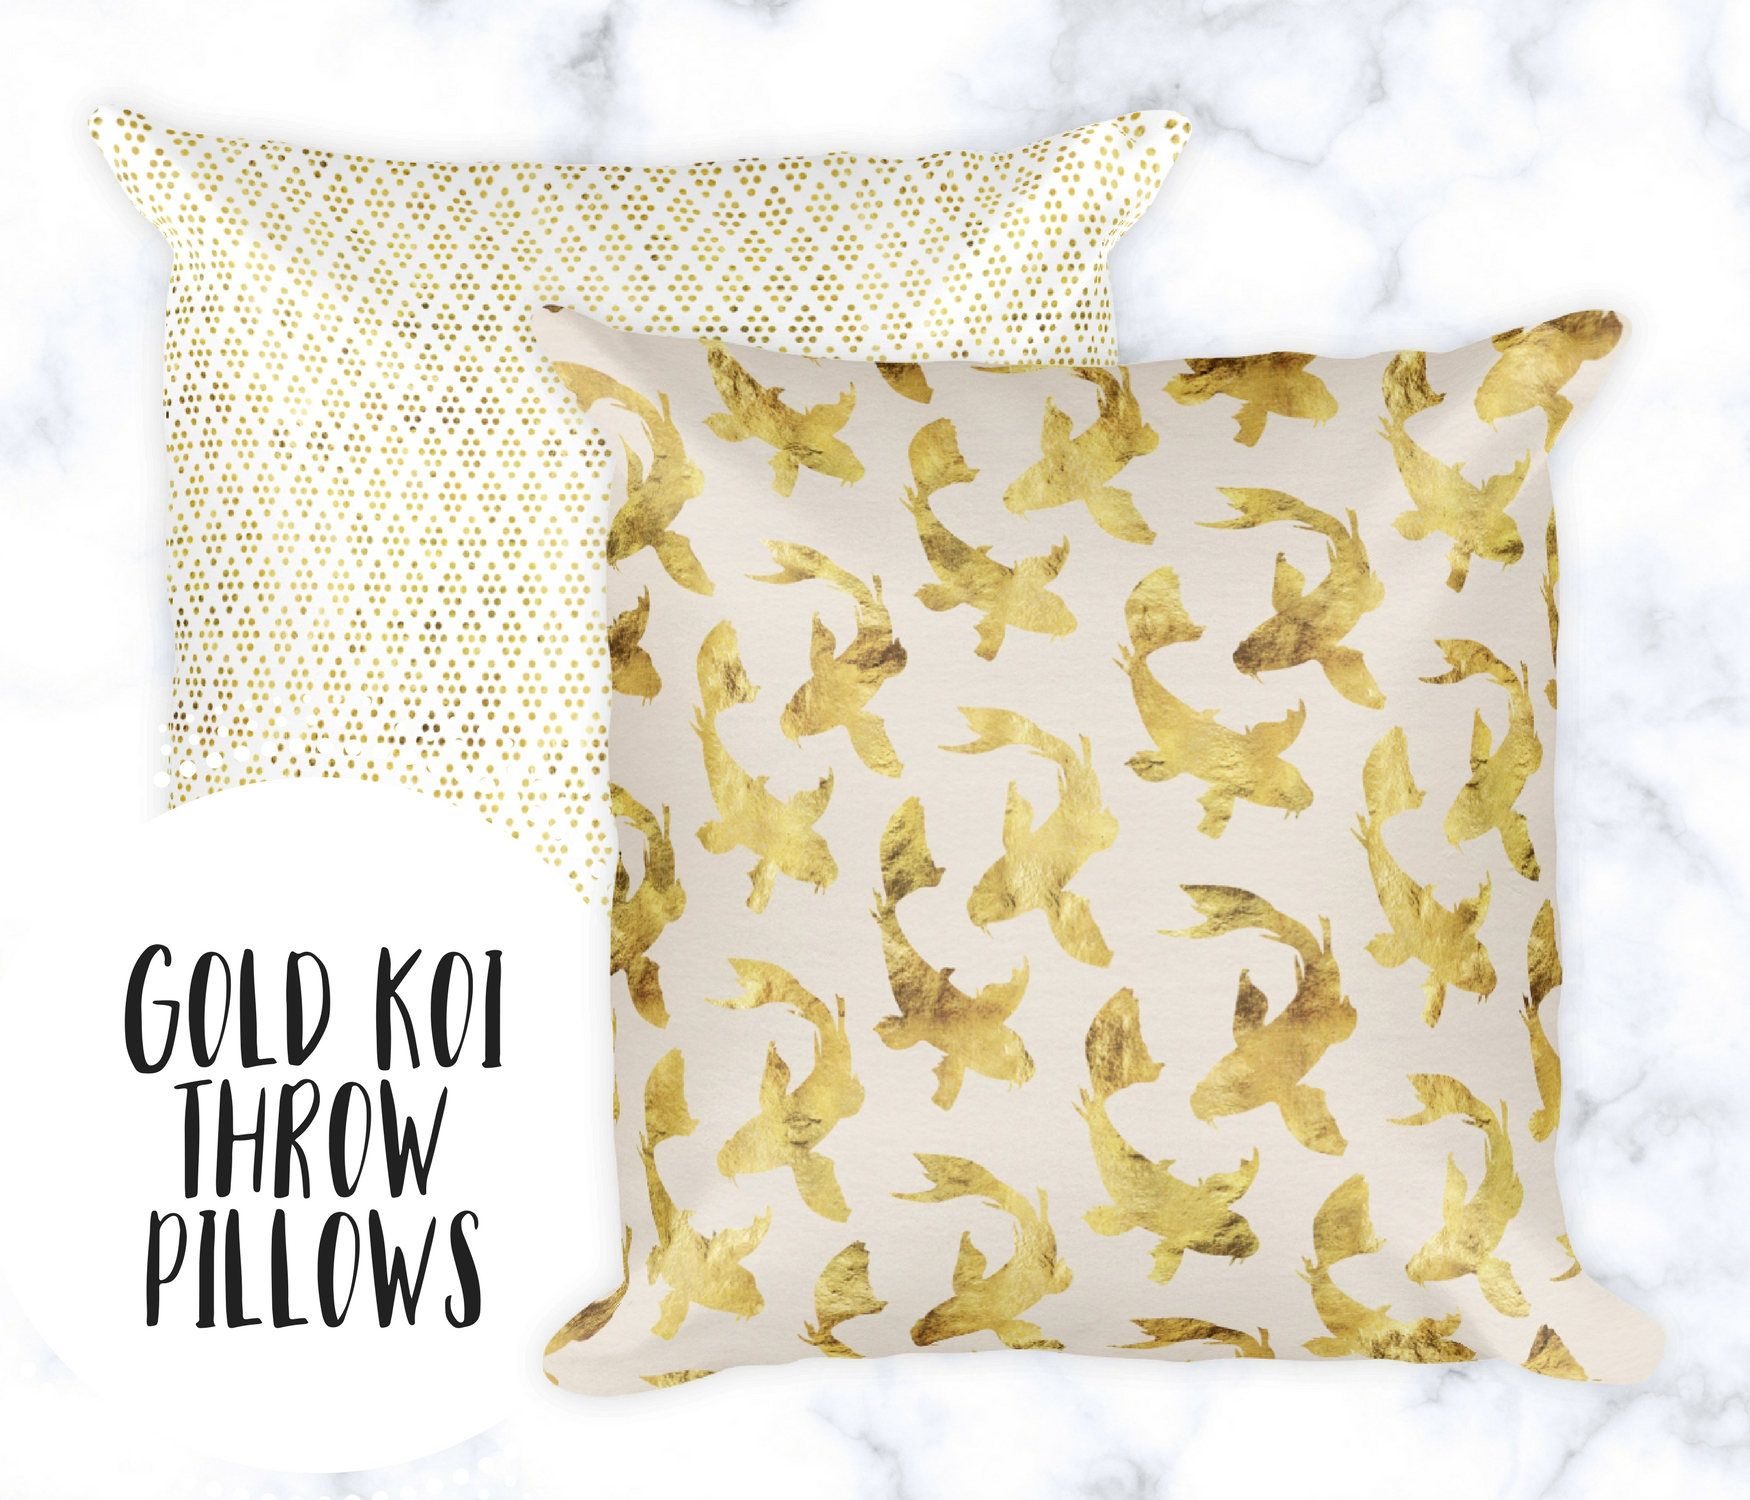 textured image x decor alt bars gold adler pillow modern pillows and talitha throw embellished jonathan